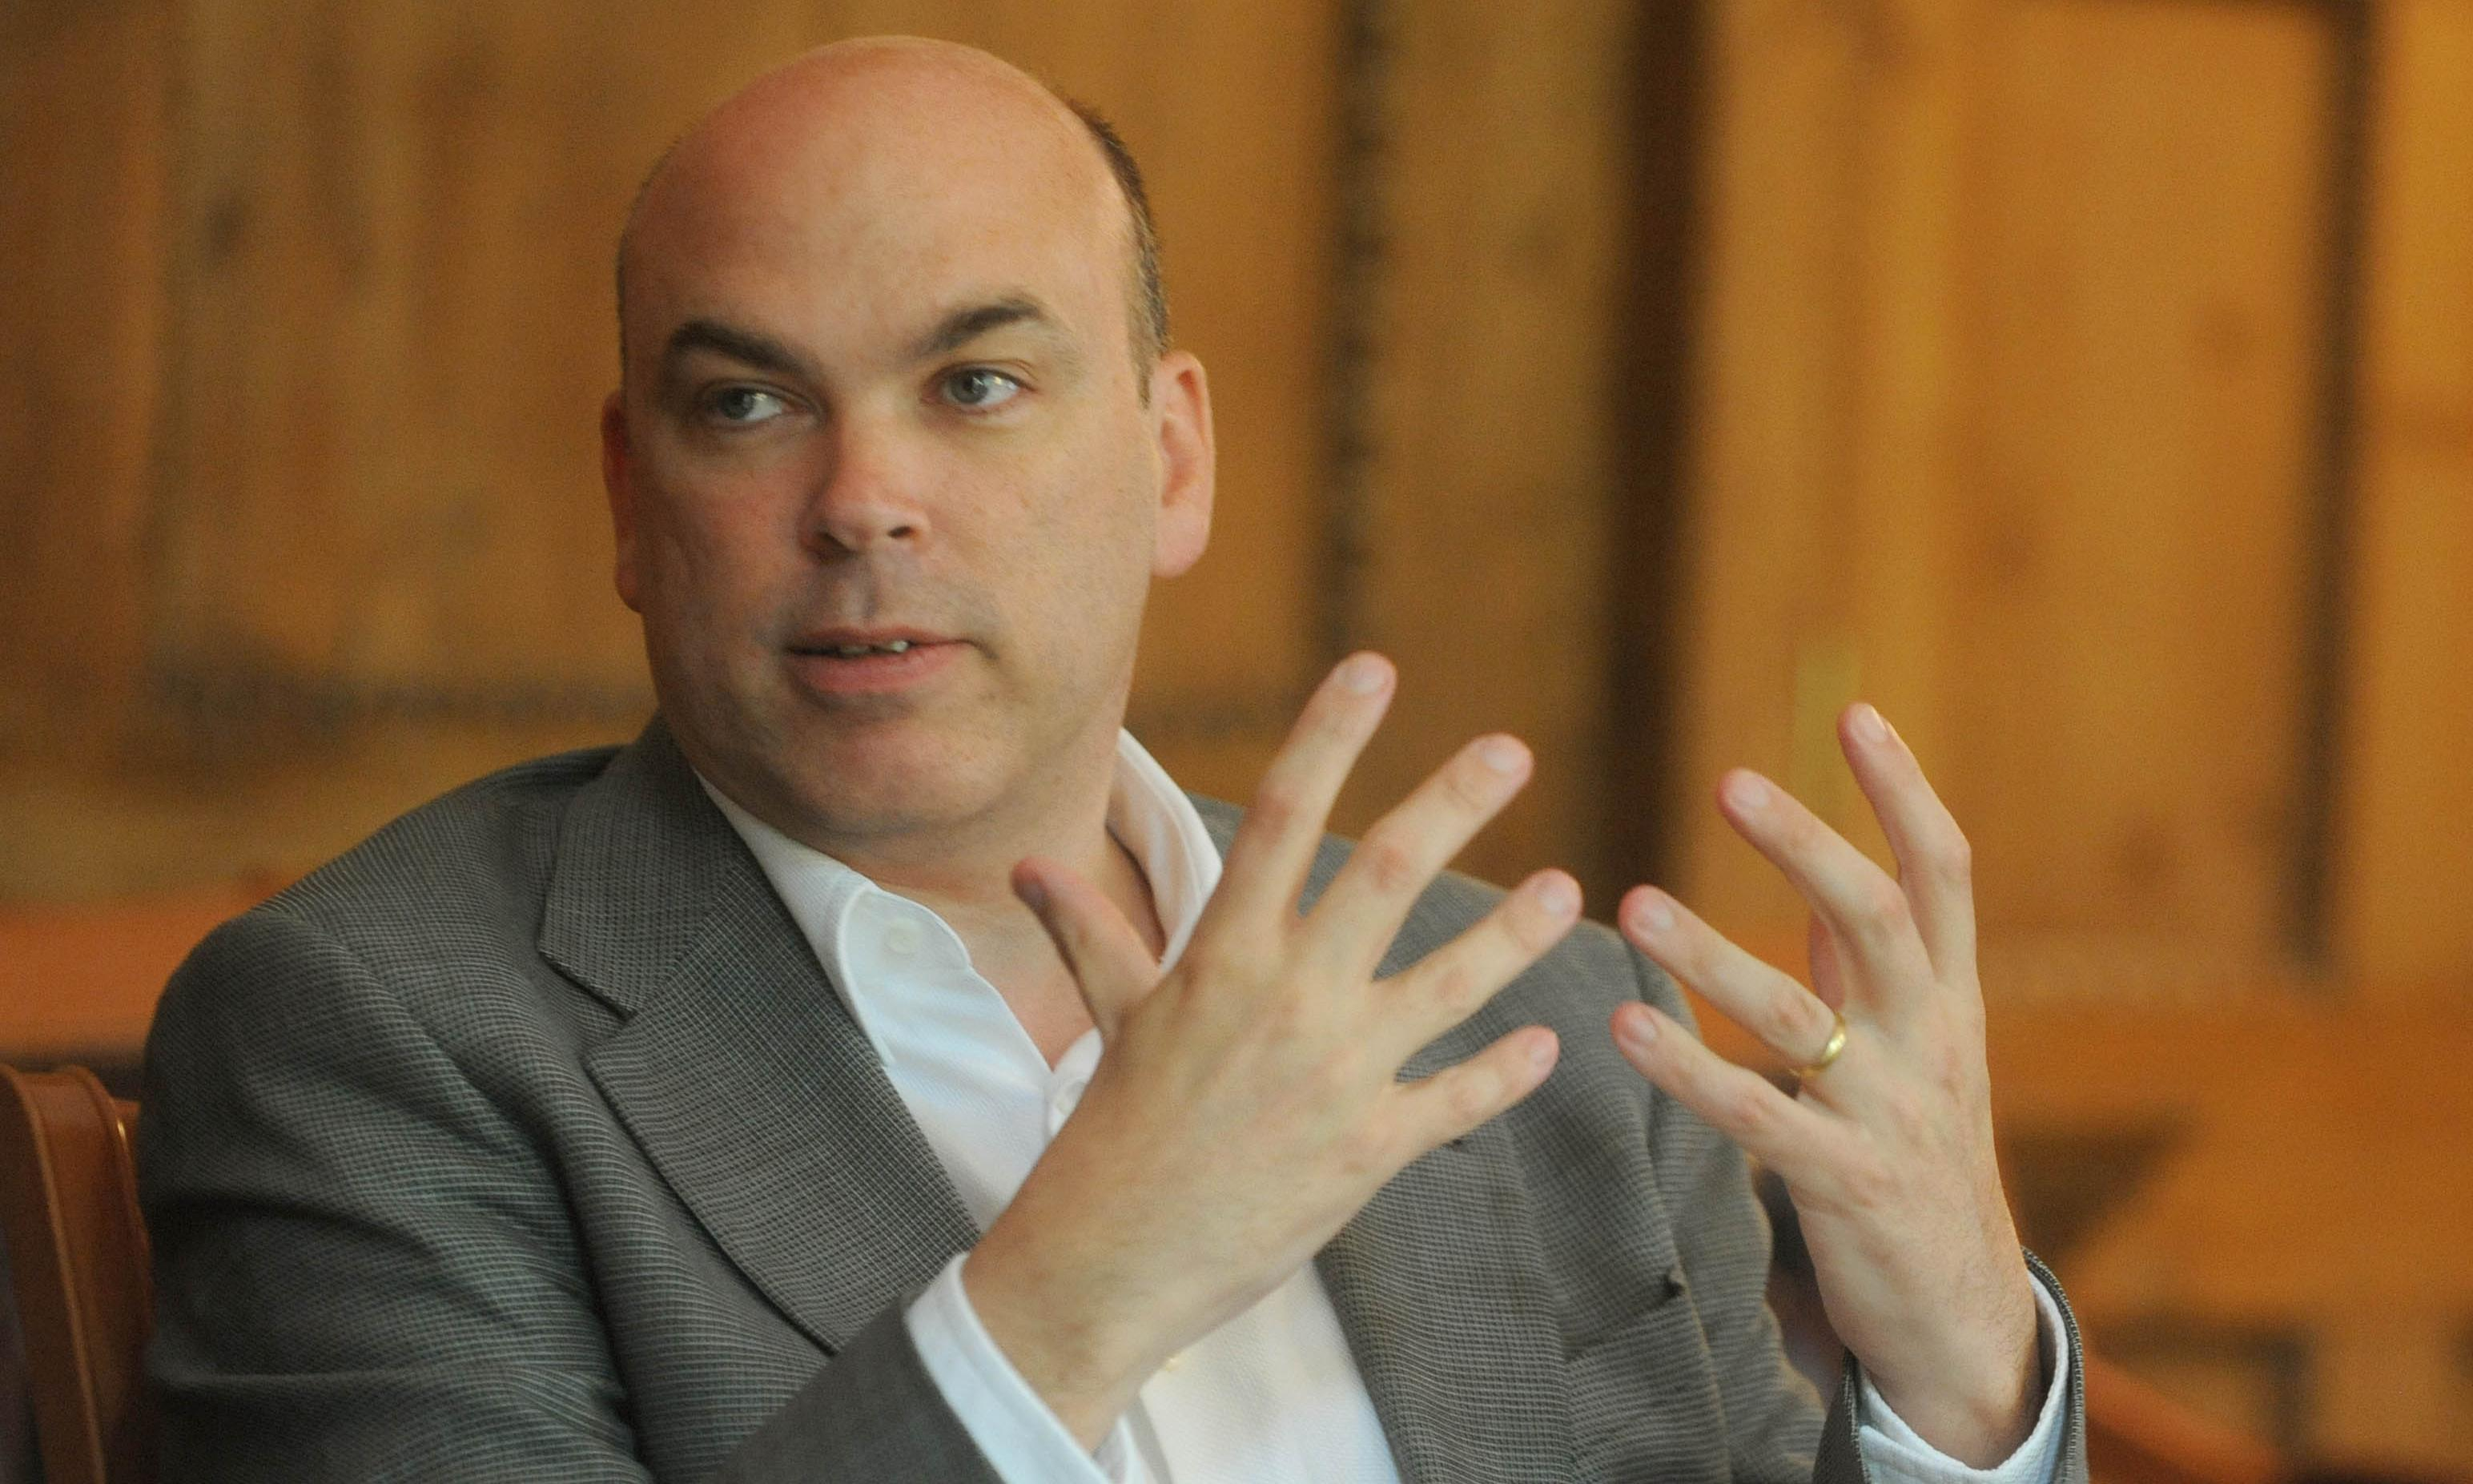 Autonomy founder Mike Lynch faces UK high court and fresh charges in US